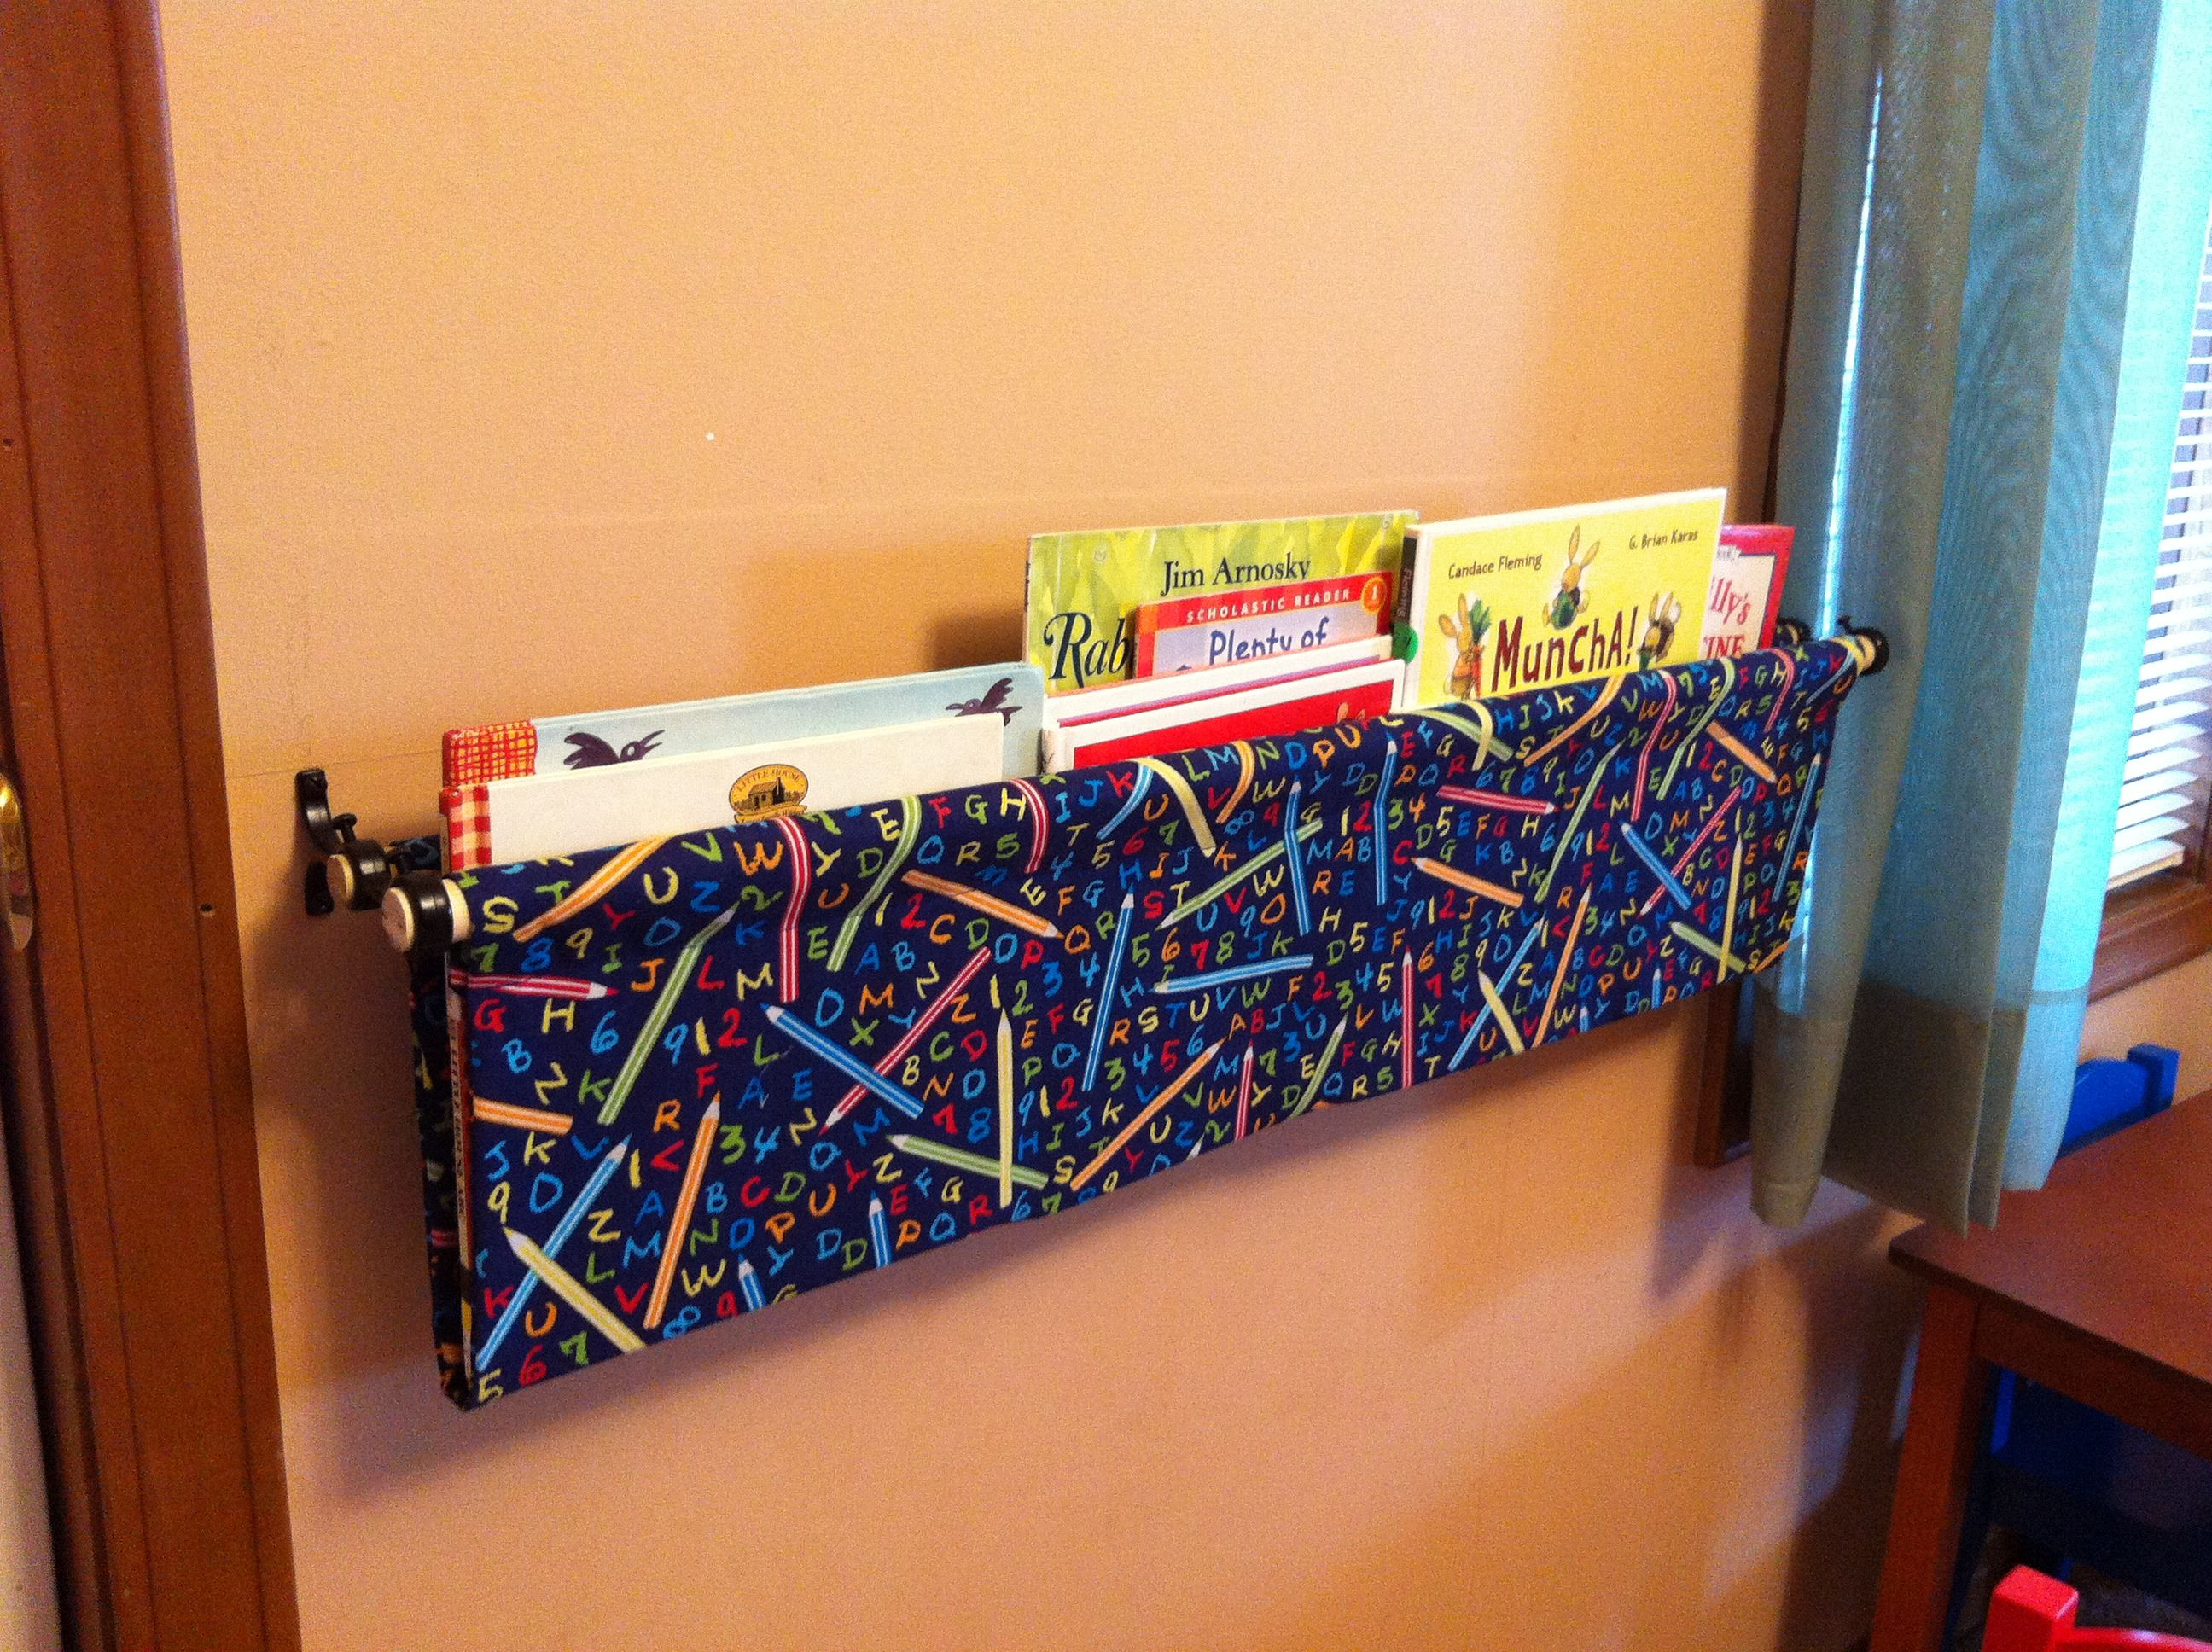 wall hanging book holder pleted projects and recipes made